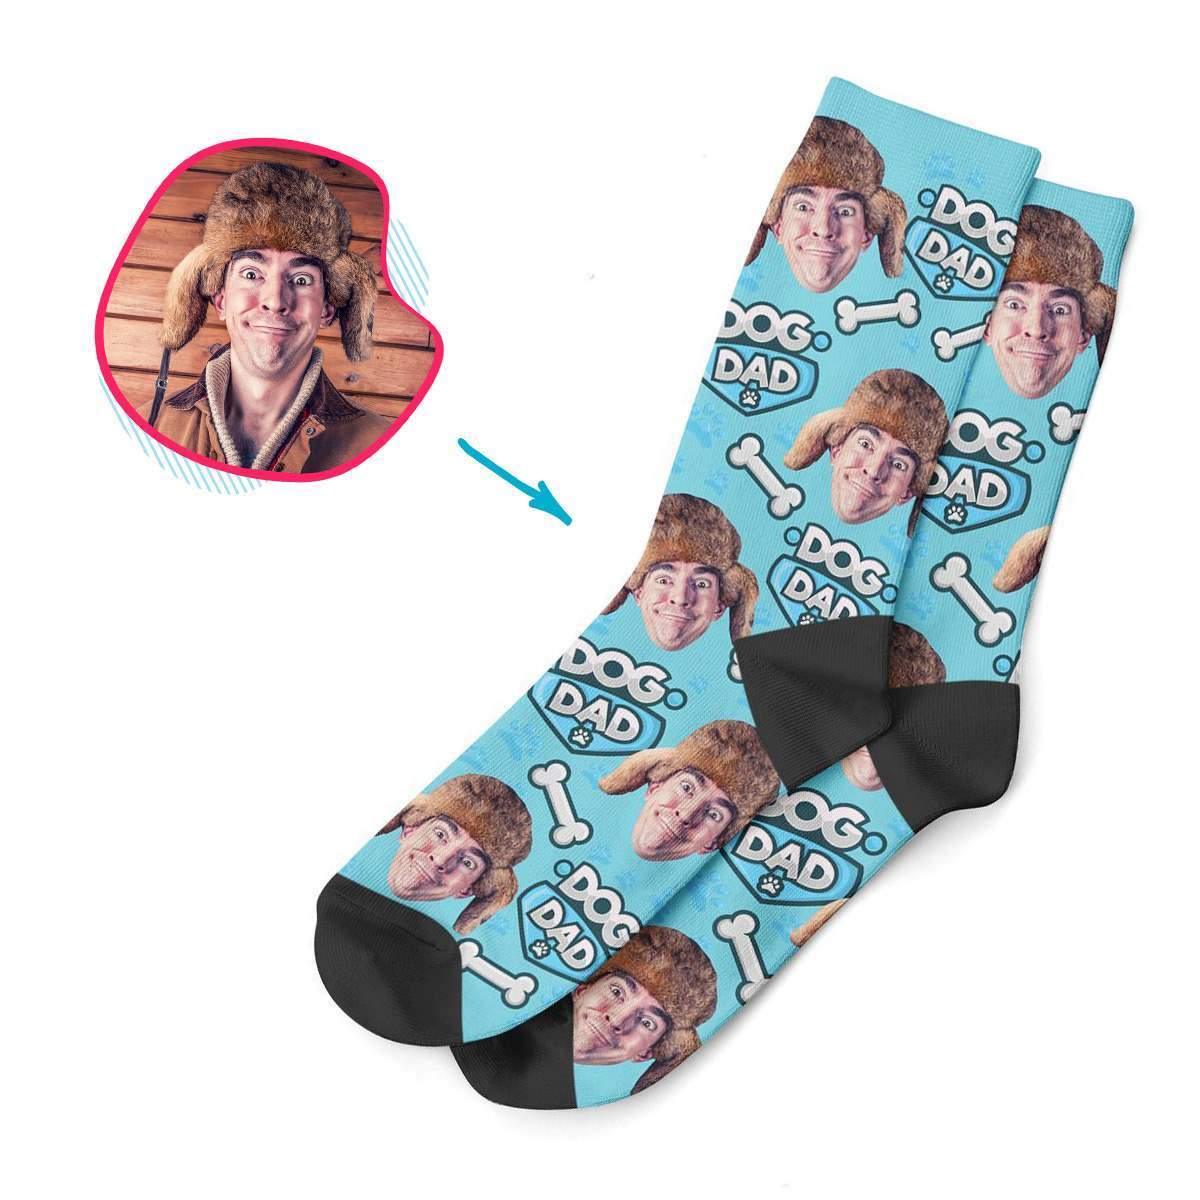 blue Dog Dad socks personalized with photo of face printed on them